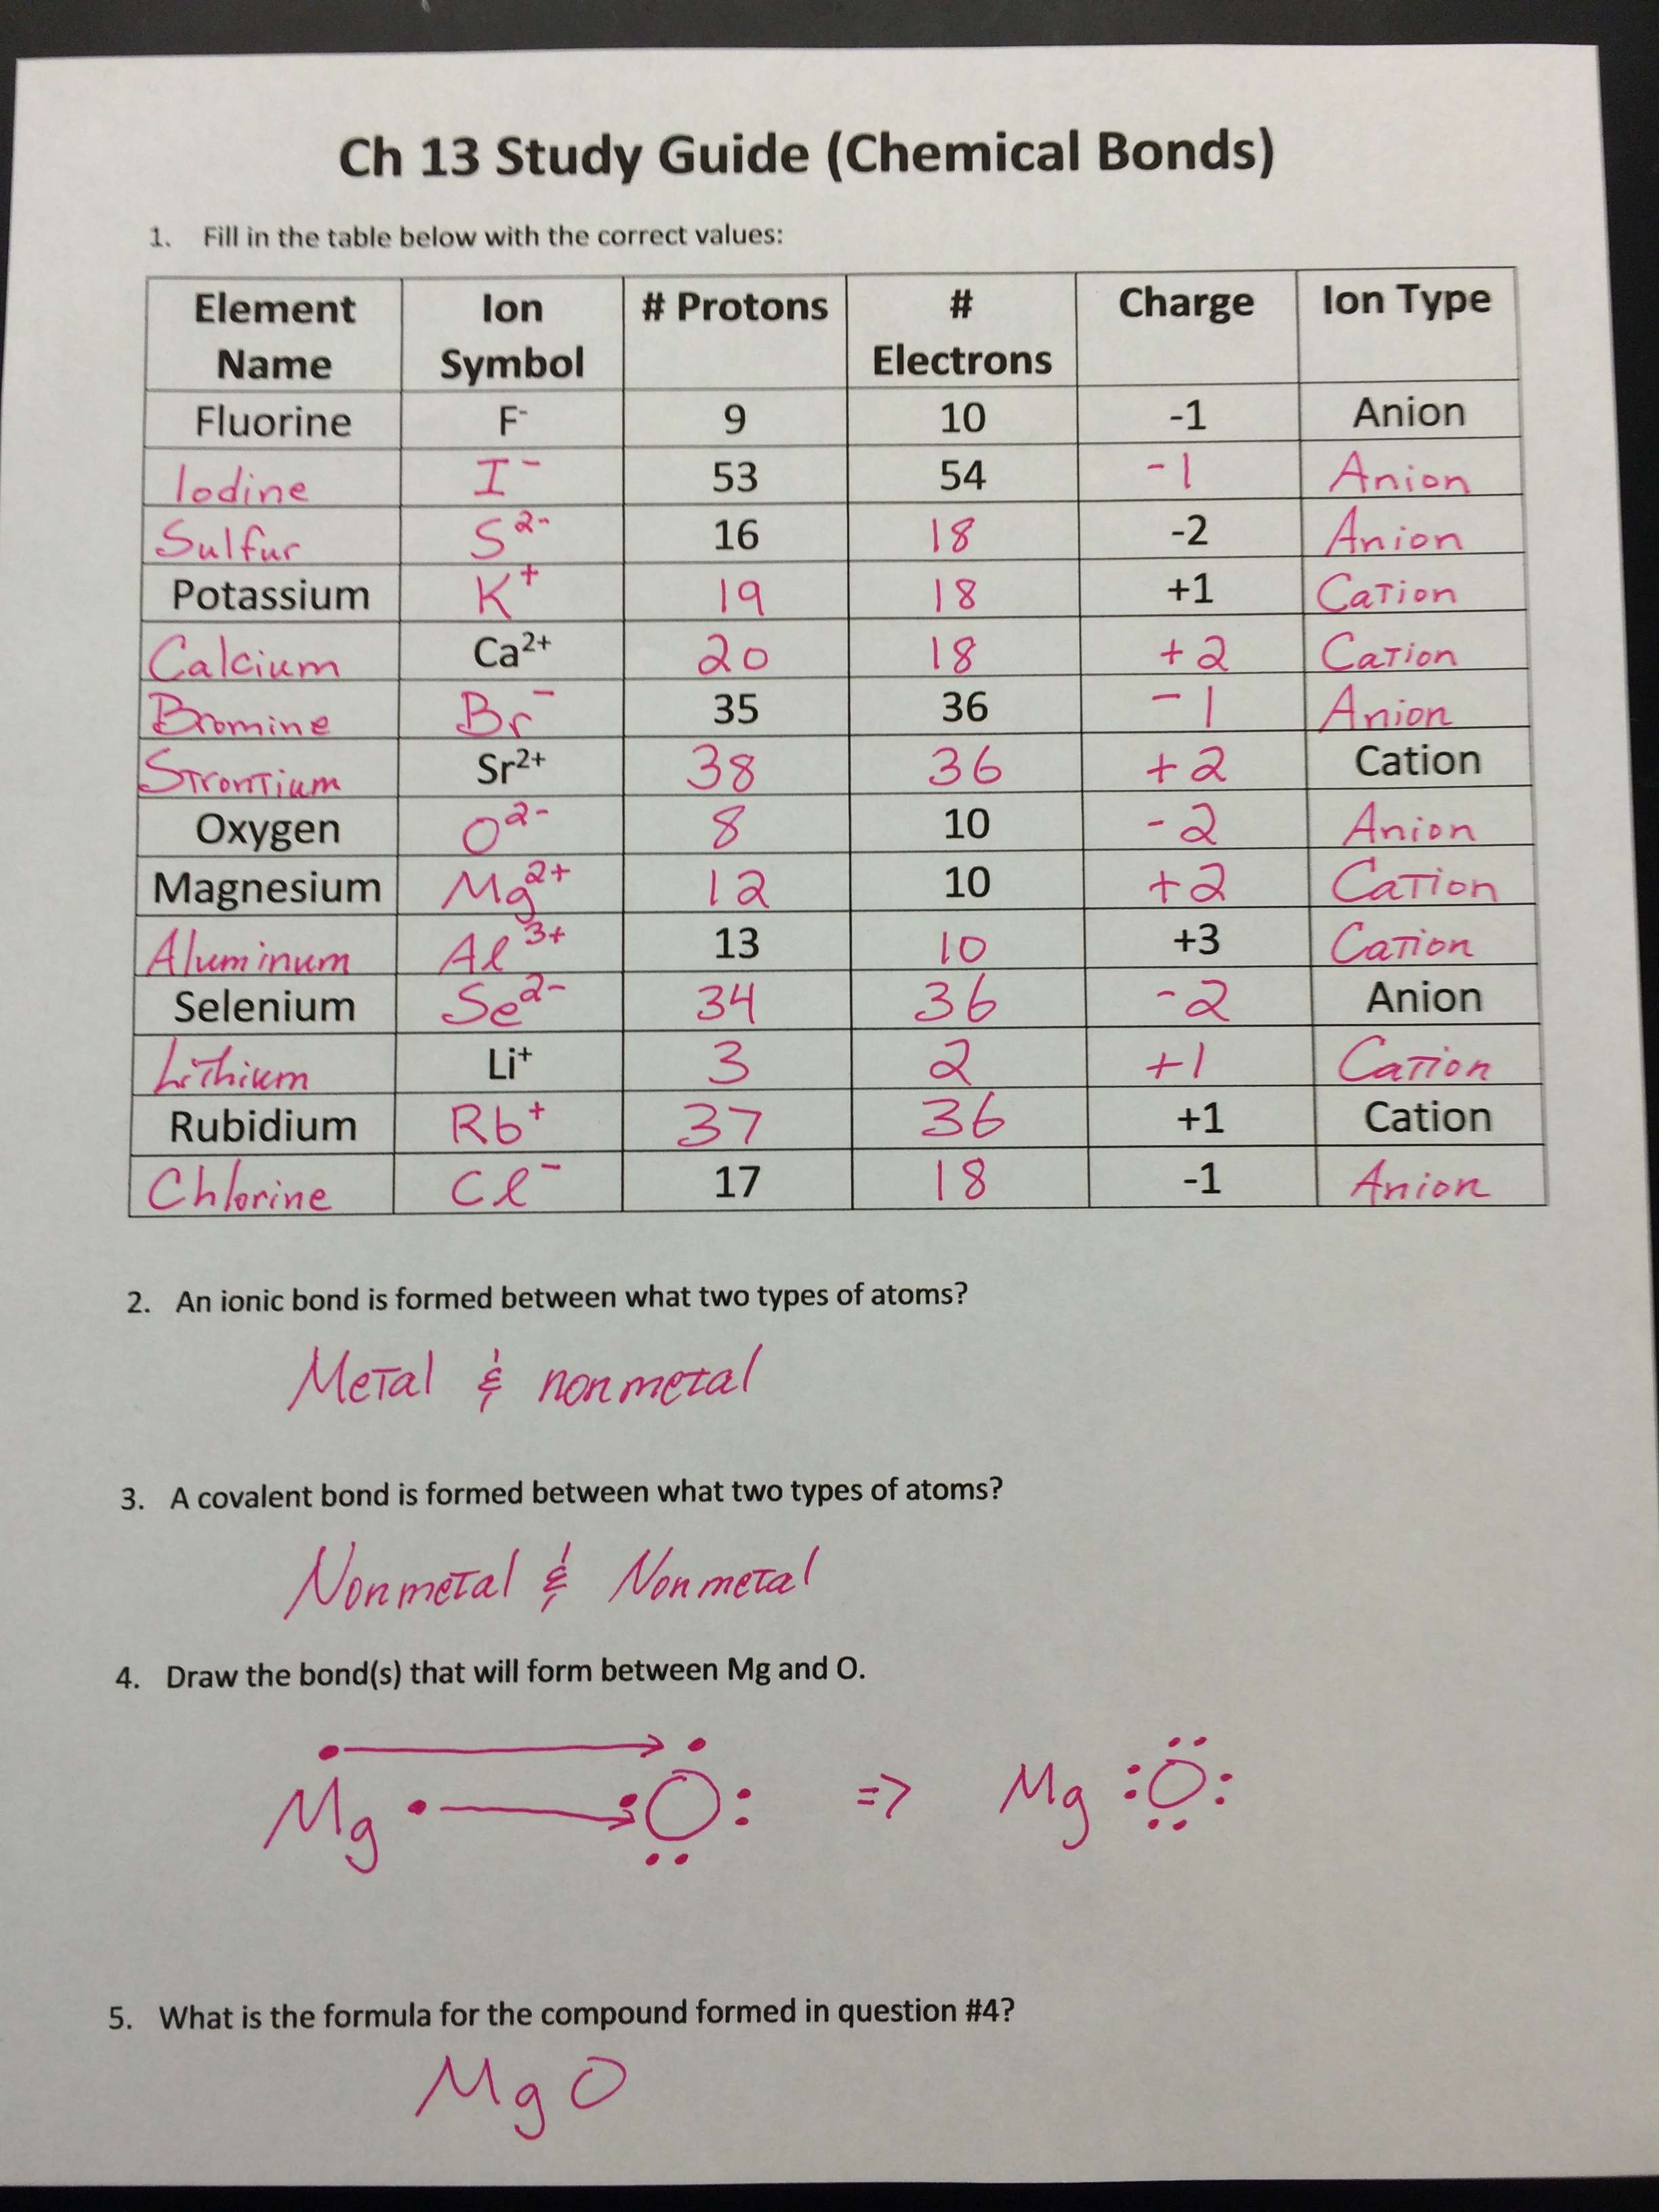 Worksheets Chemical Bonding Worksheet Answers key s chemical bonding reactions acids 1 answer key